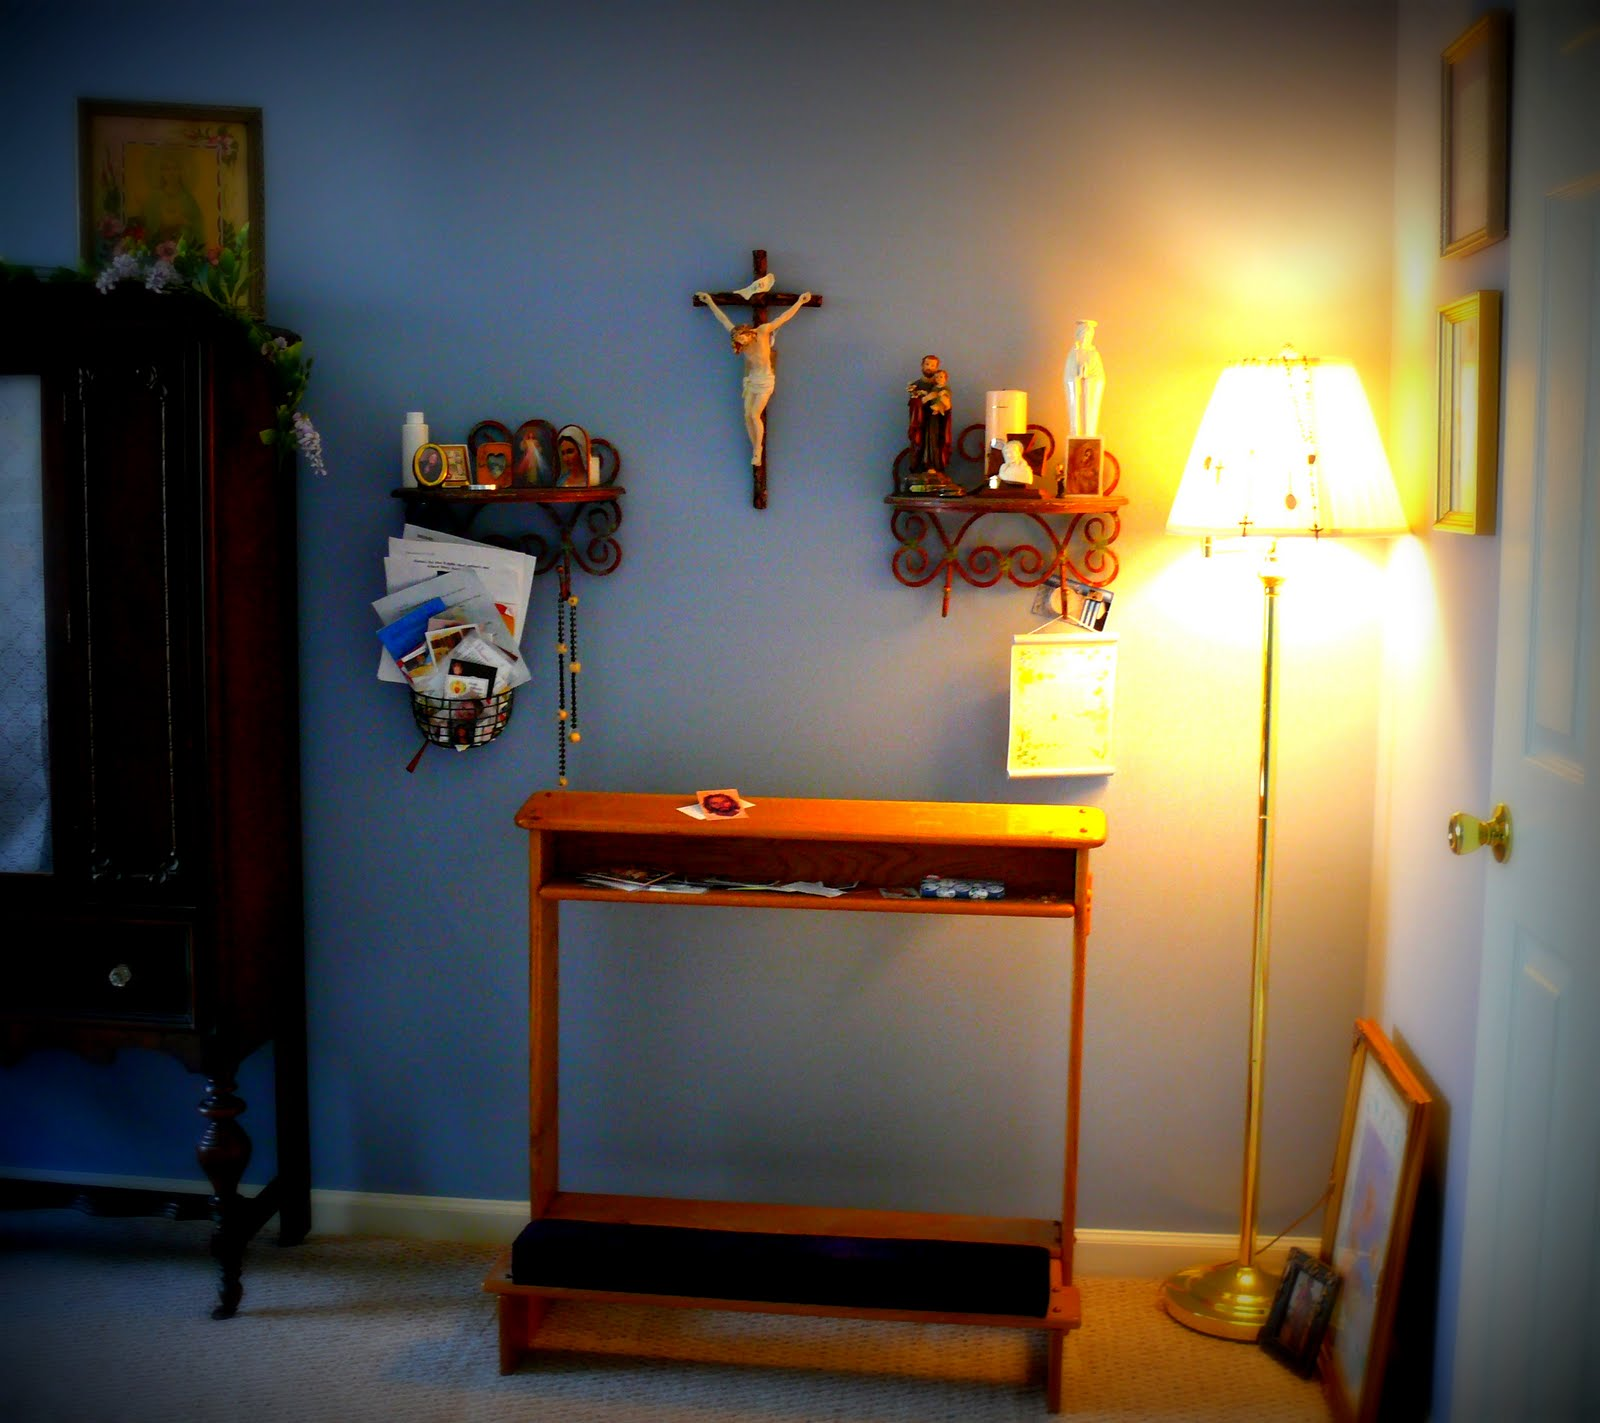 Home Altars For Sale: Prayer Altars, Idolatry, And Grace